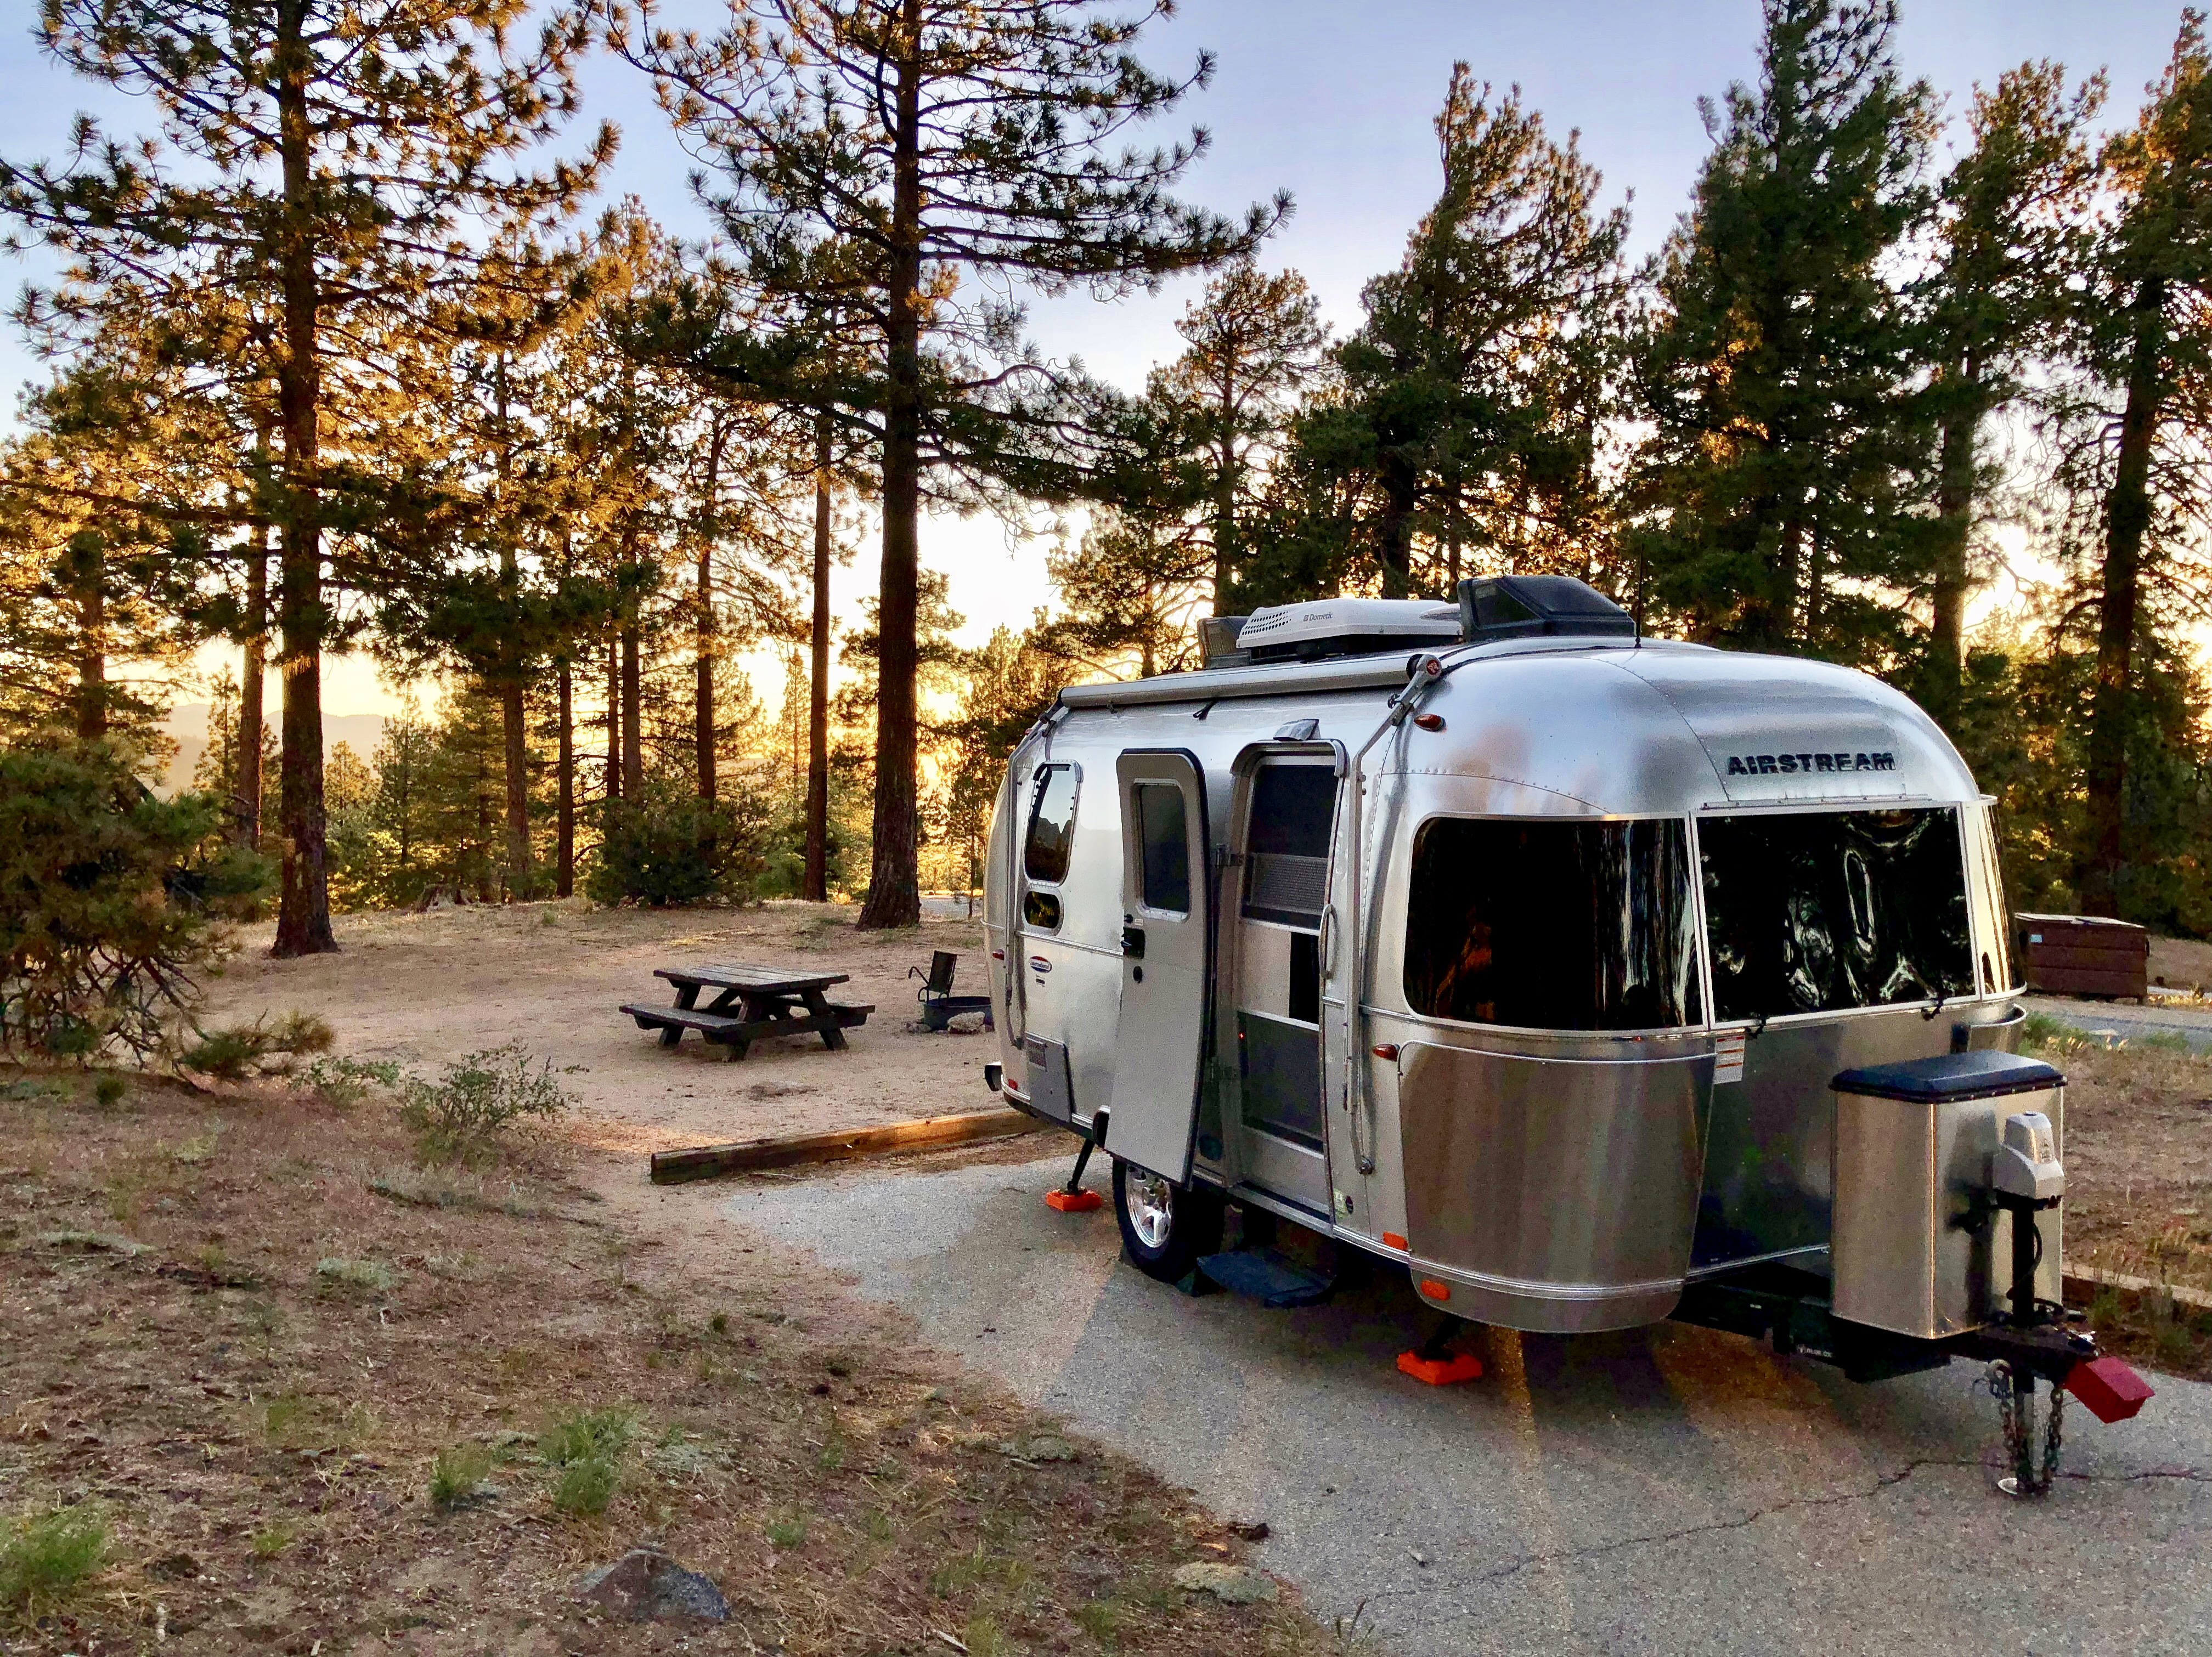 Table Mountain Campground in Llano, CA. Airstream International 2016